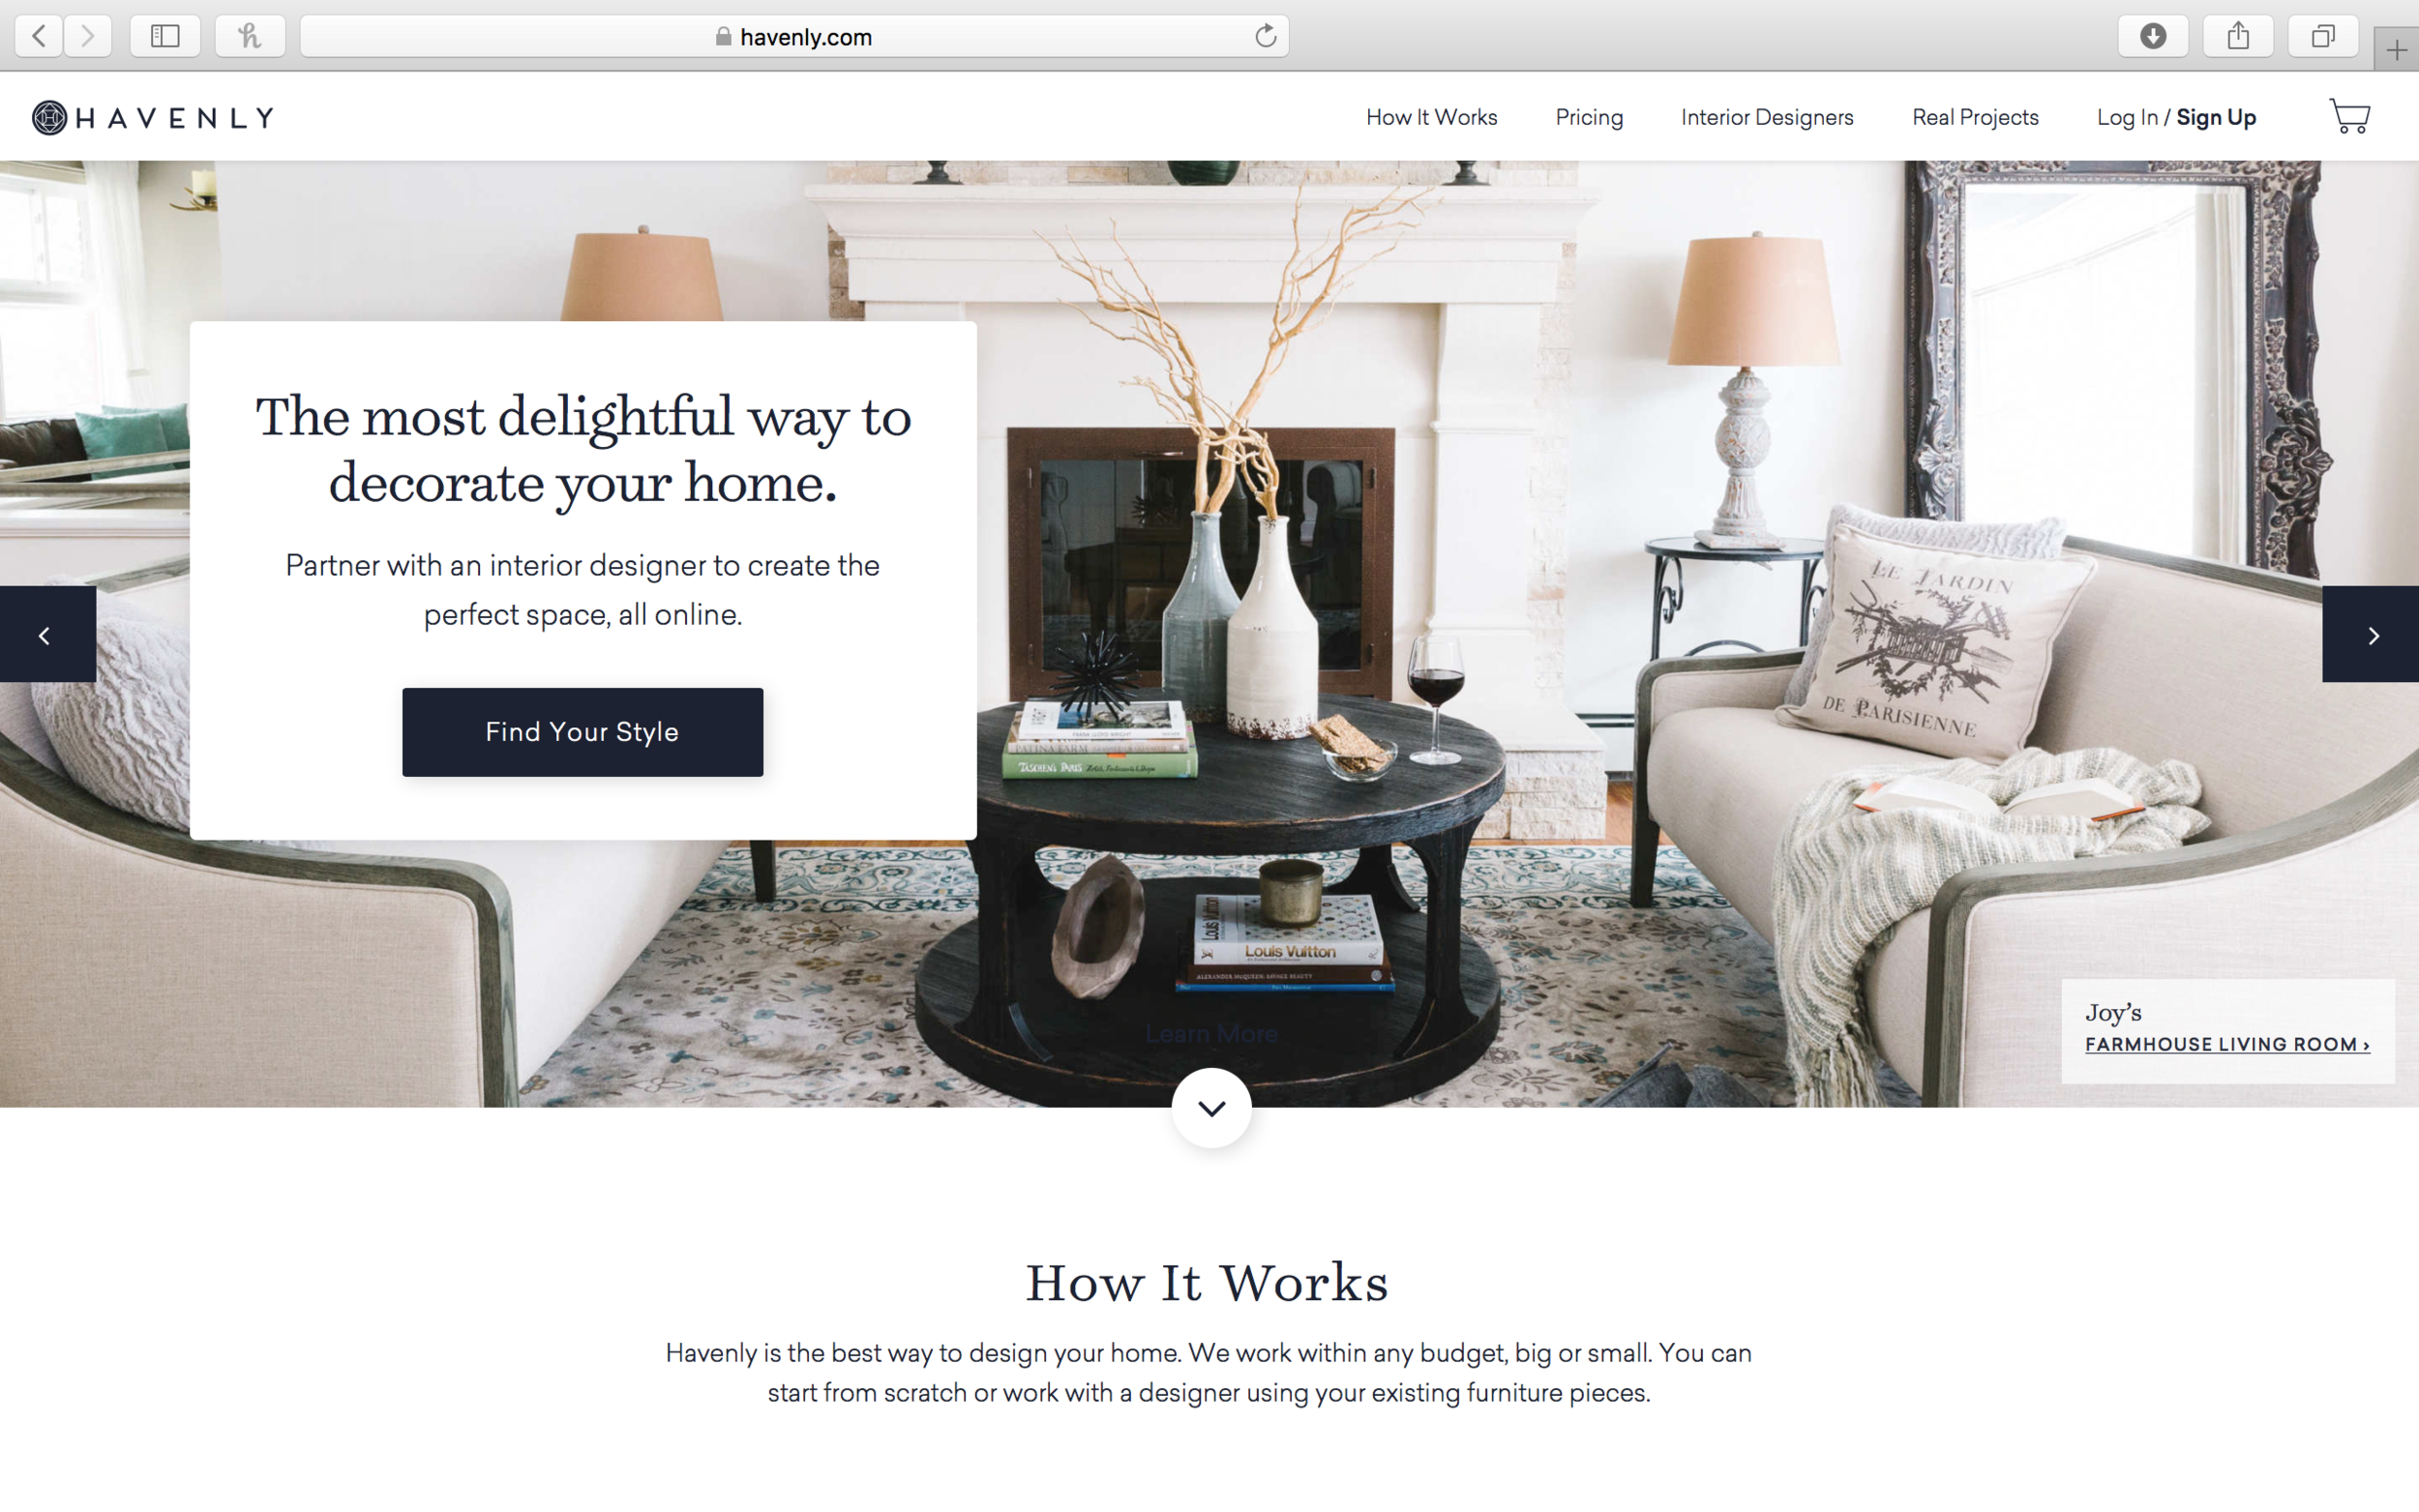 havenly - The Havenly platform uses a combination of designers, data science, visualization tools and a catalog of items spanning 600+ vendors to allow users to make designing their home affordable, delightful and fun.